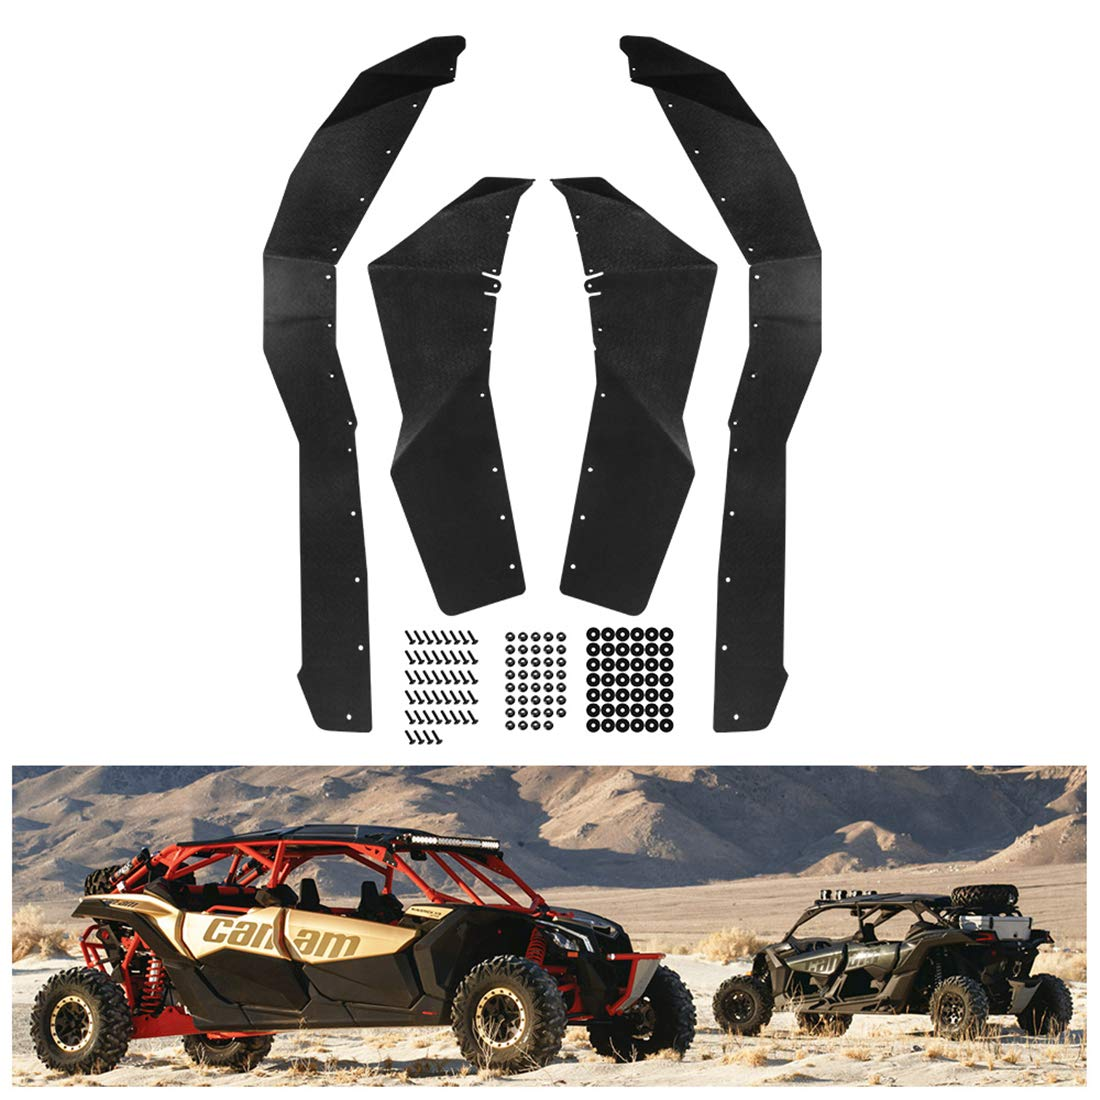 KIWI MASTER Fender Flares Extensions Compatible for 2017-2019 Can Am Maverick X3 Extended Mud Flaps Guards